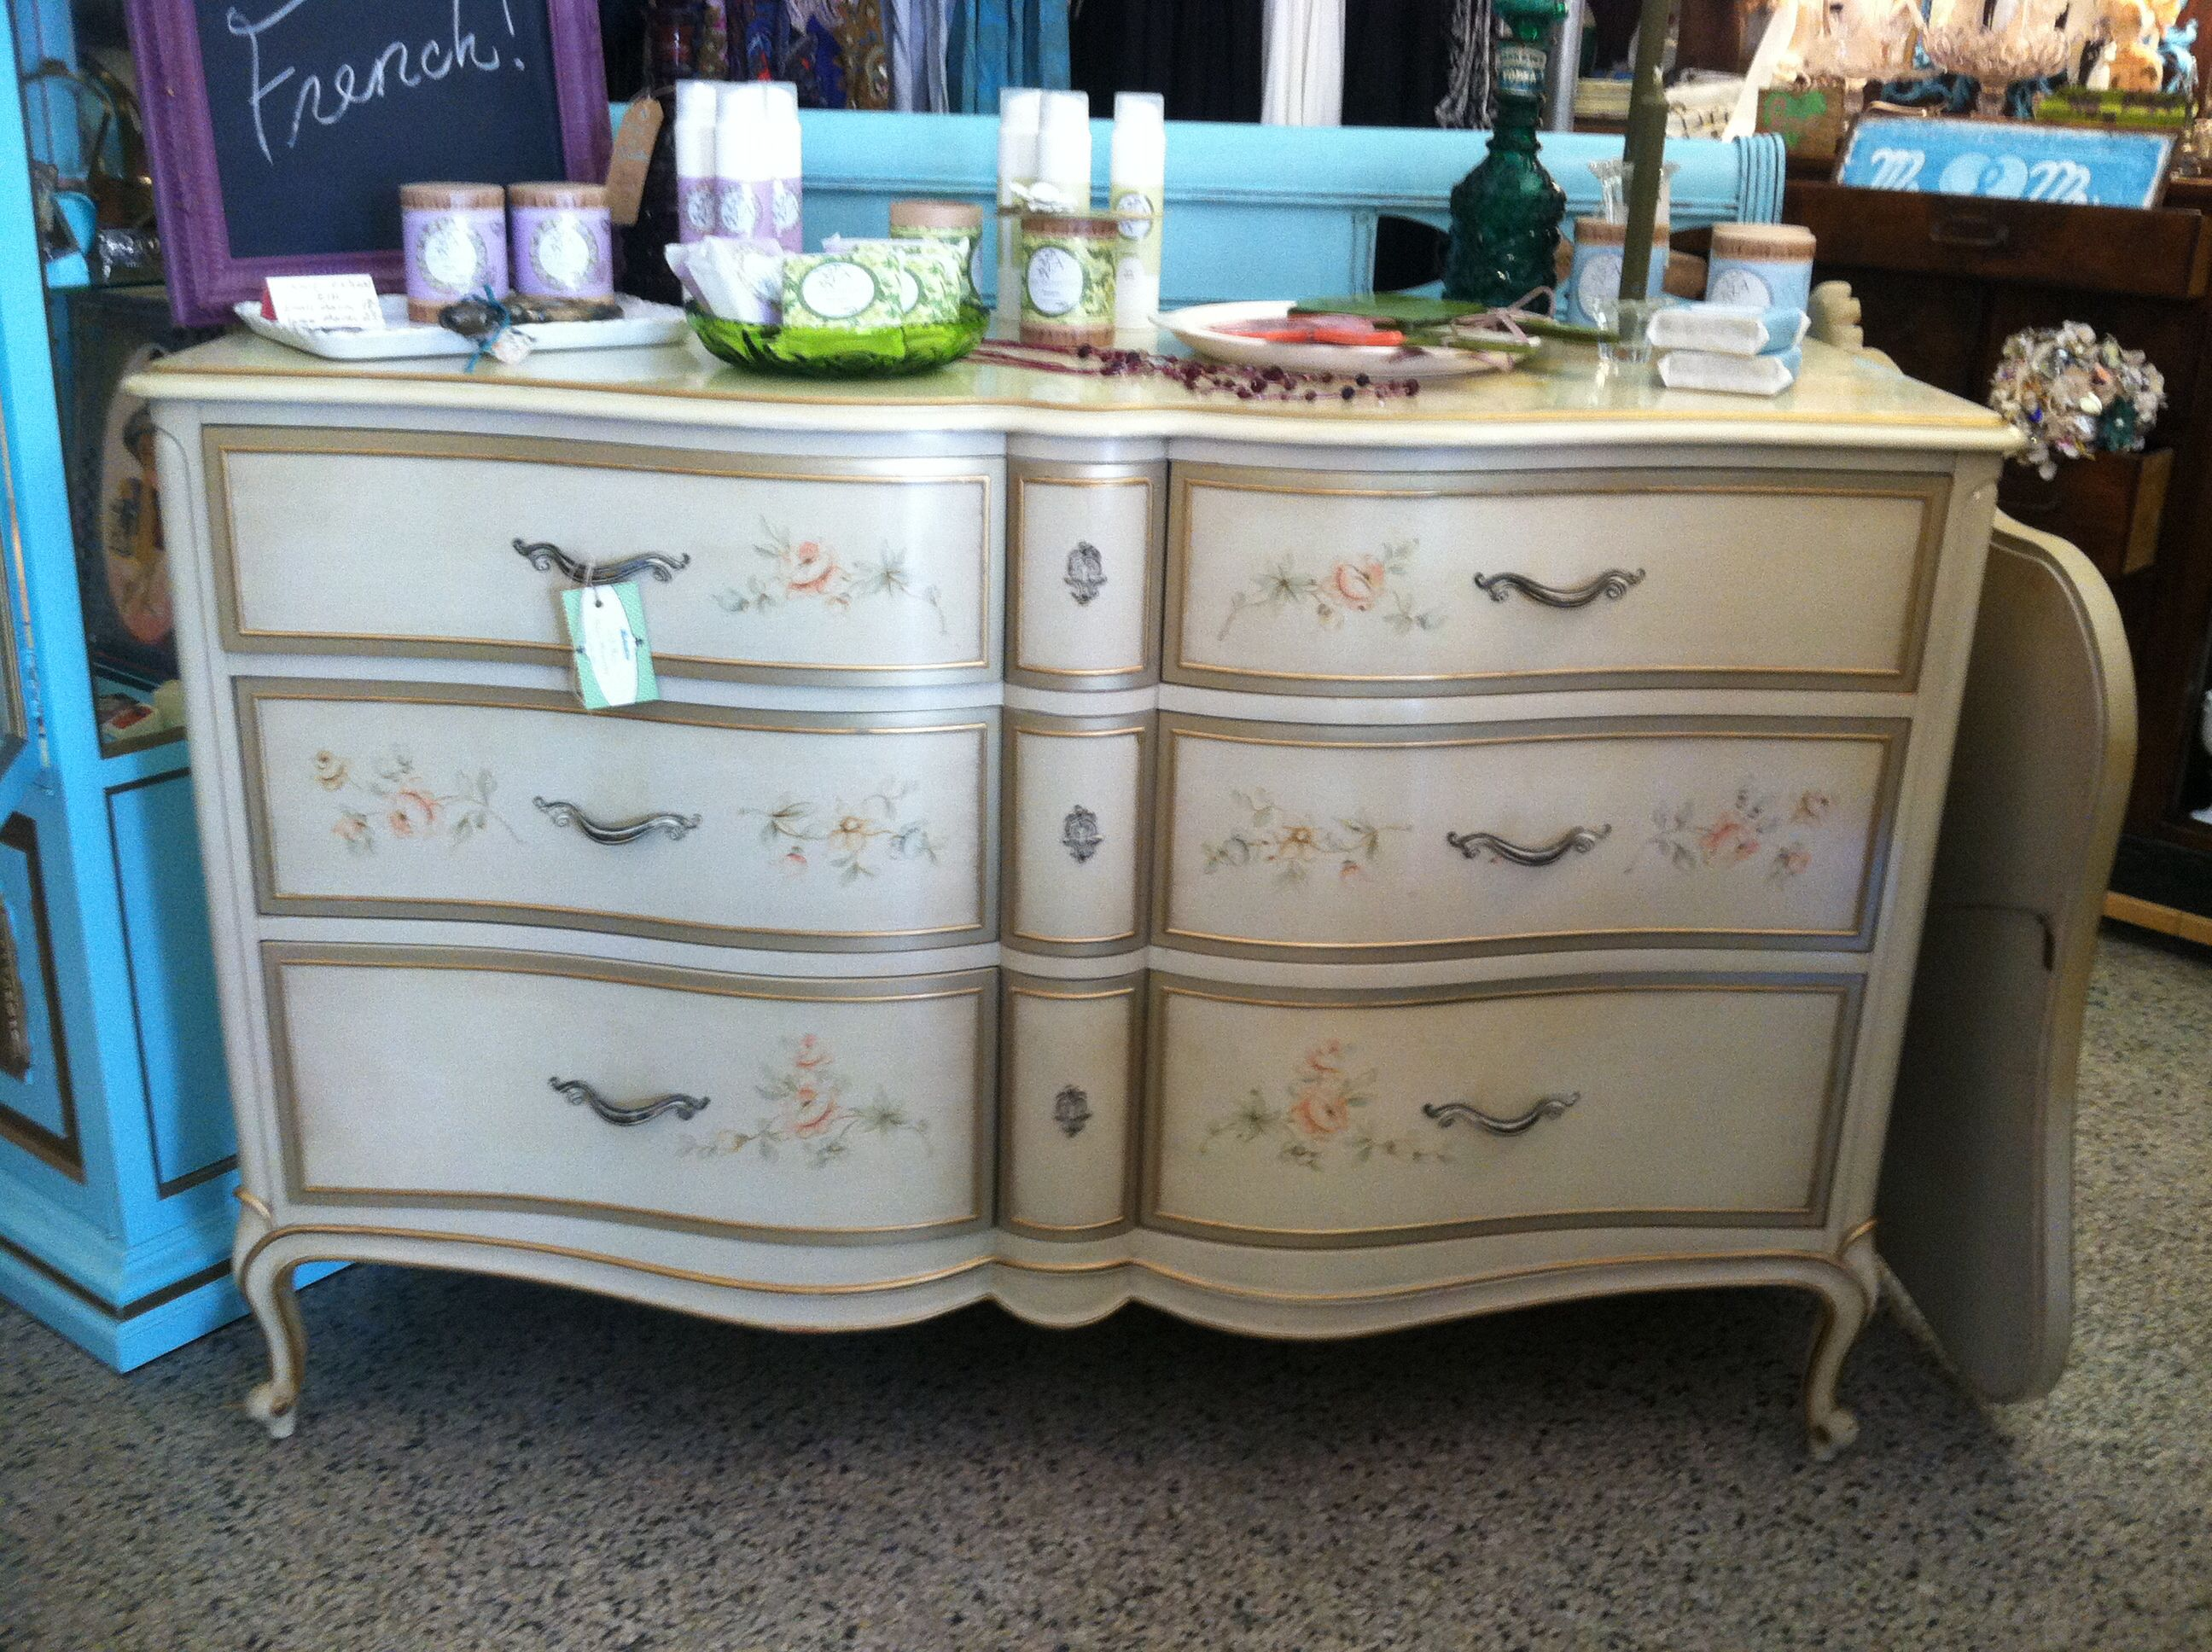 drexel bedroom set%0A Drexel French Touraine dresser and mirror